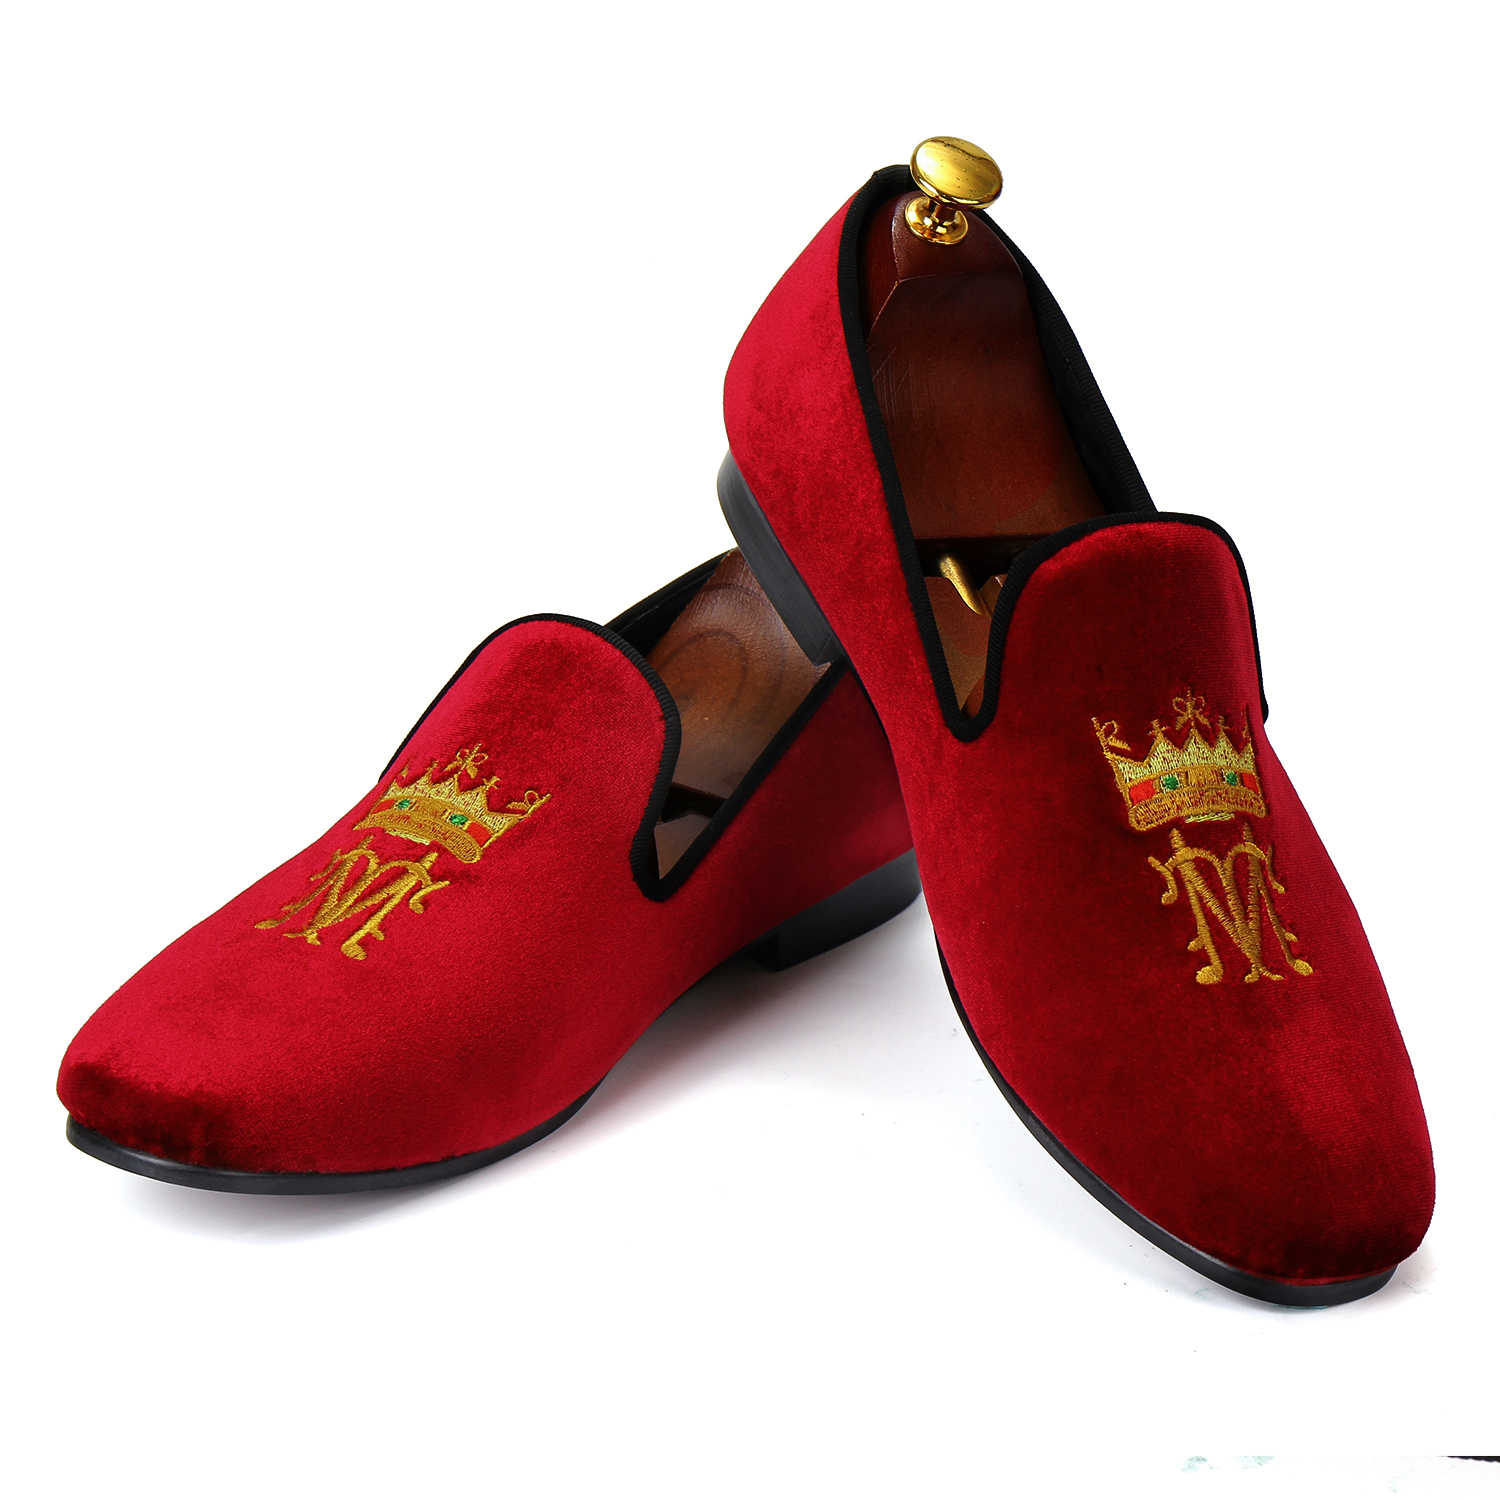 16eb4abdf6d28 Harpelunde New Arrival Men Shoes Casual Burgundy Velvet Loafers Embroidery Smoking  Slippers Size 7-13